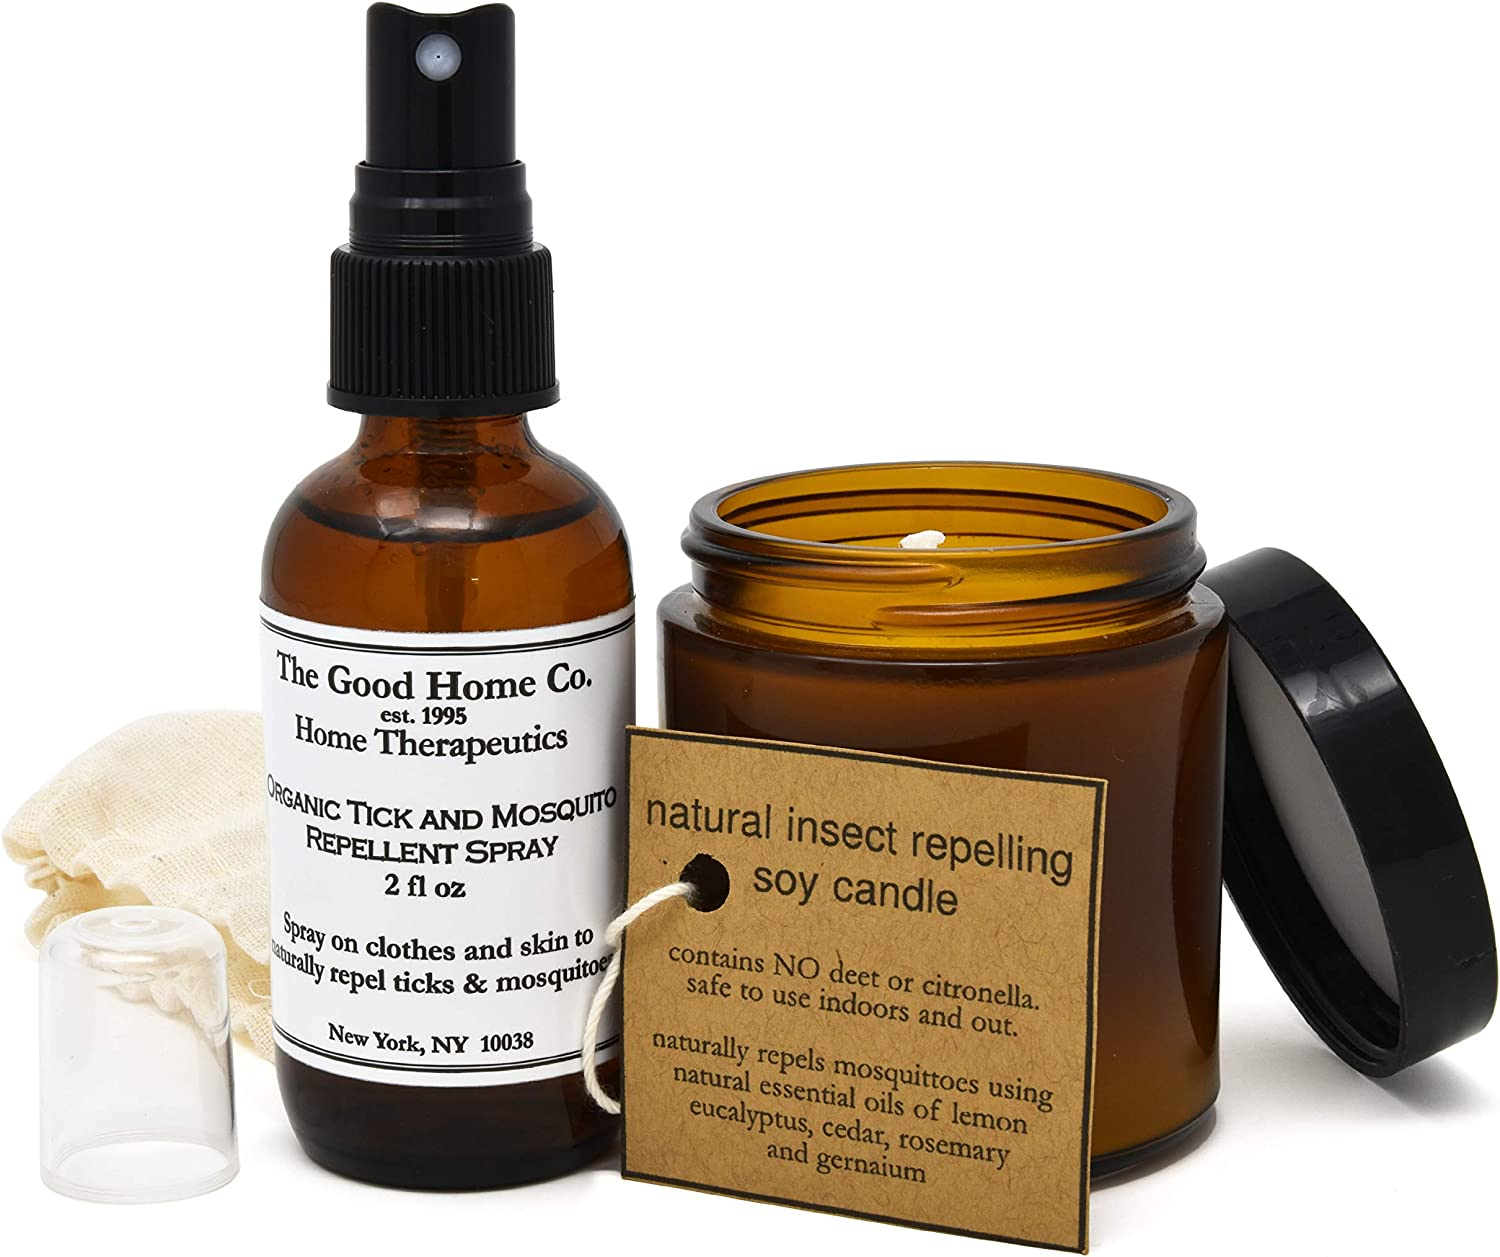 Natural Insect Repellent Spray and Candle, Repel Mosquito & Ticks with Essential Oils, Safe and Natural for Indoor and Outdoor Use, 2 oz Spray + 4 oz Candle, Made in The USA by The Good Home Co.